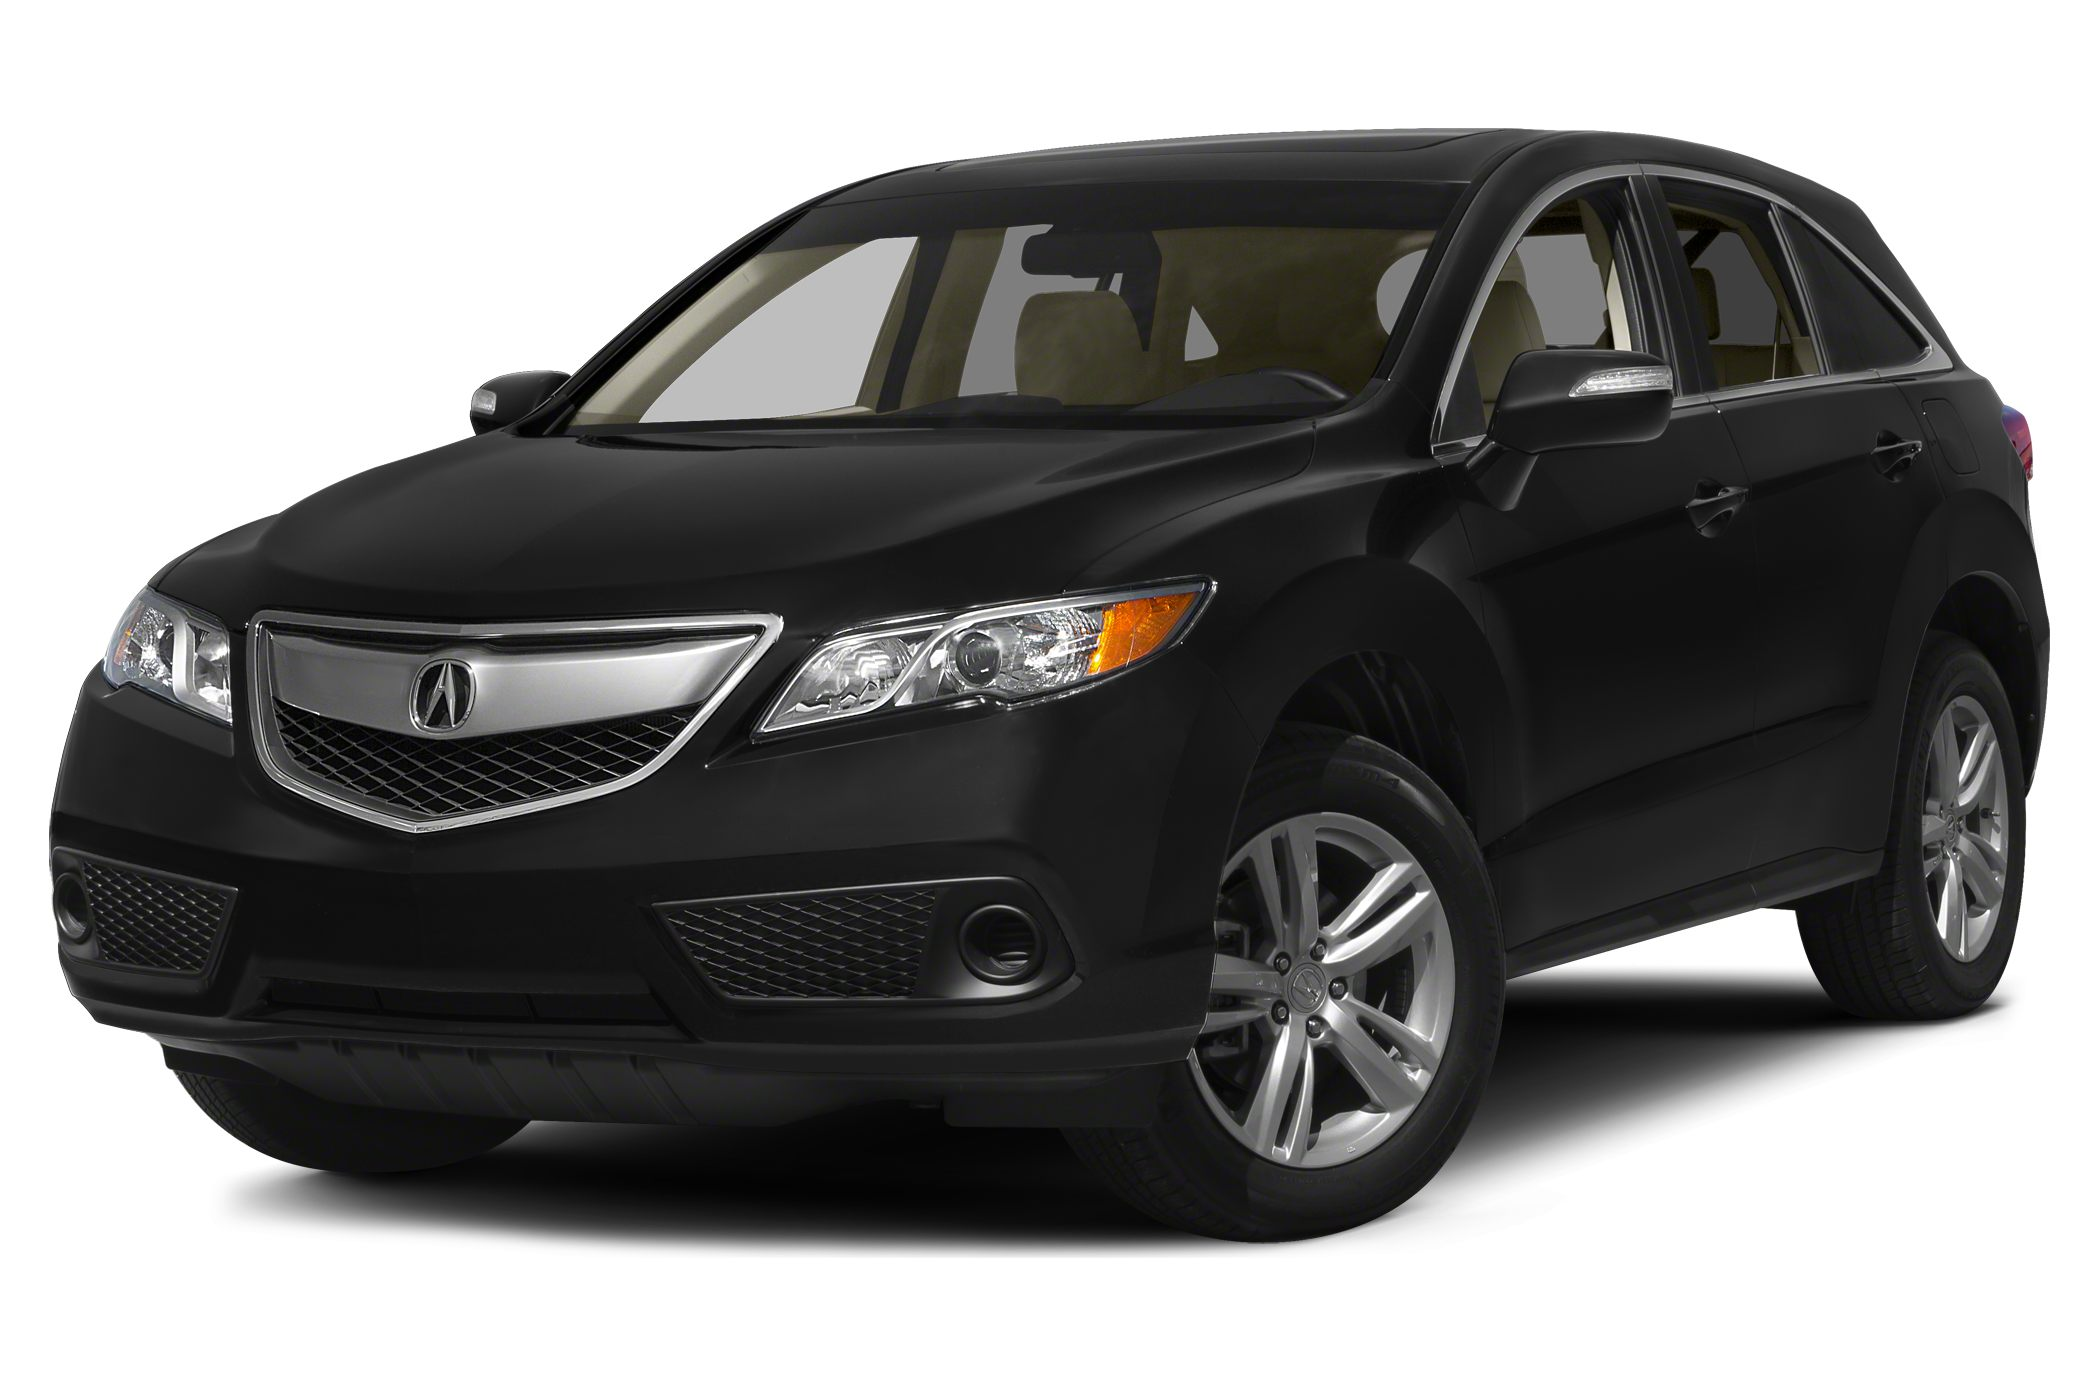 2015 Acura RDX Base SUV for sale in Columbus for $41,115 with 4 miles.